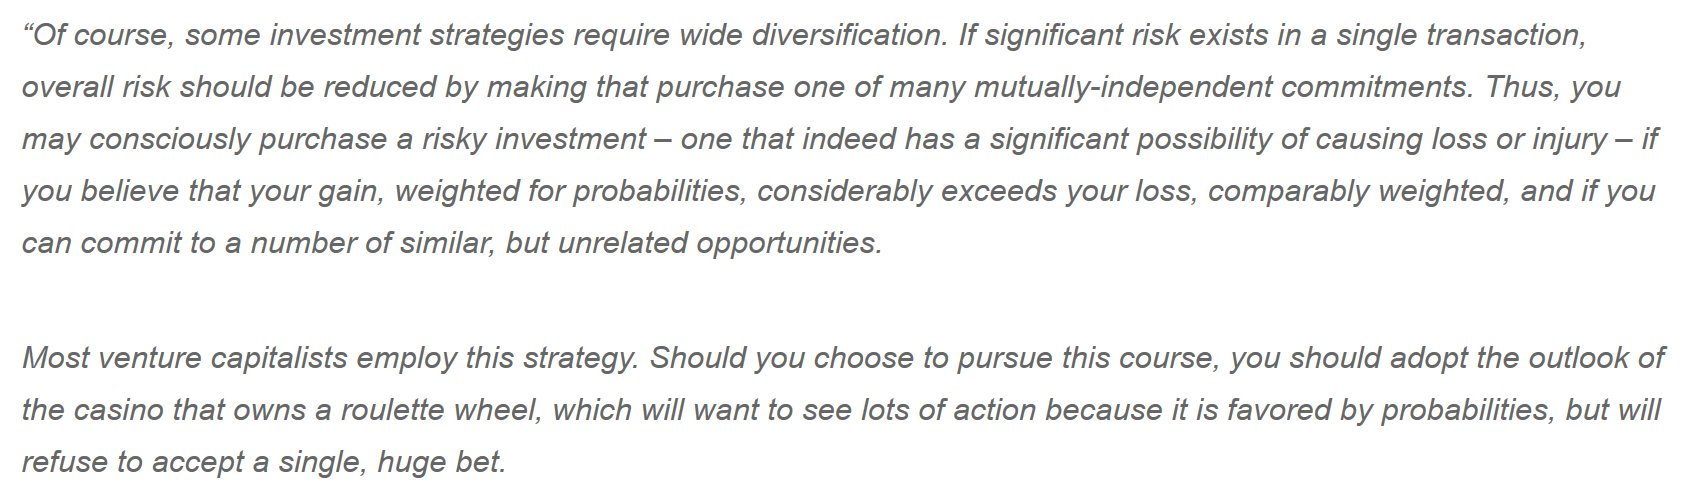 Warren Buffett, on Diversification and Portfolio Construction